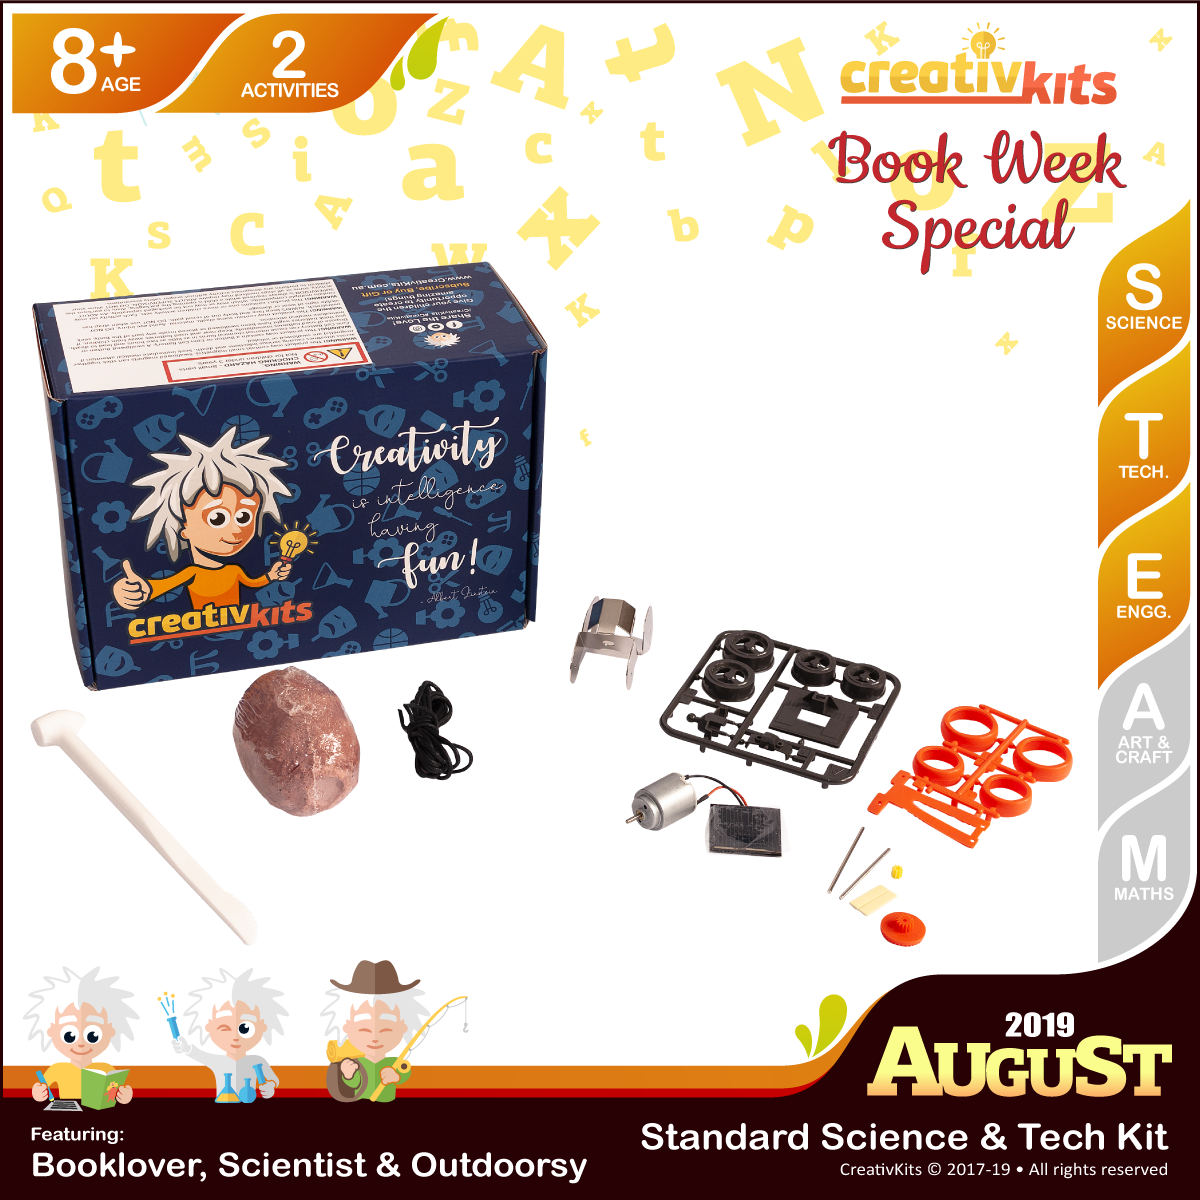 August Standard Science & Tech. Kit • Age 8 plus • BYO Solar Metal Racer and Shark Tooth Fossil